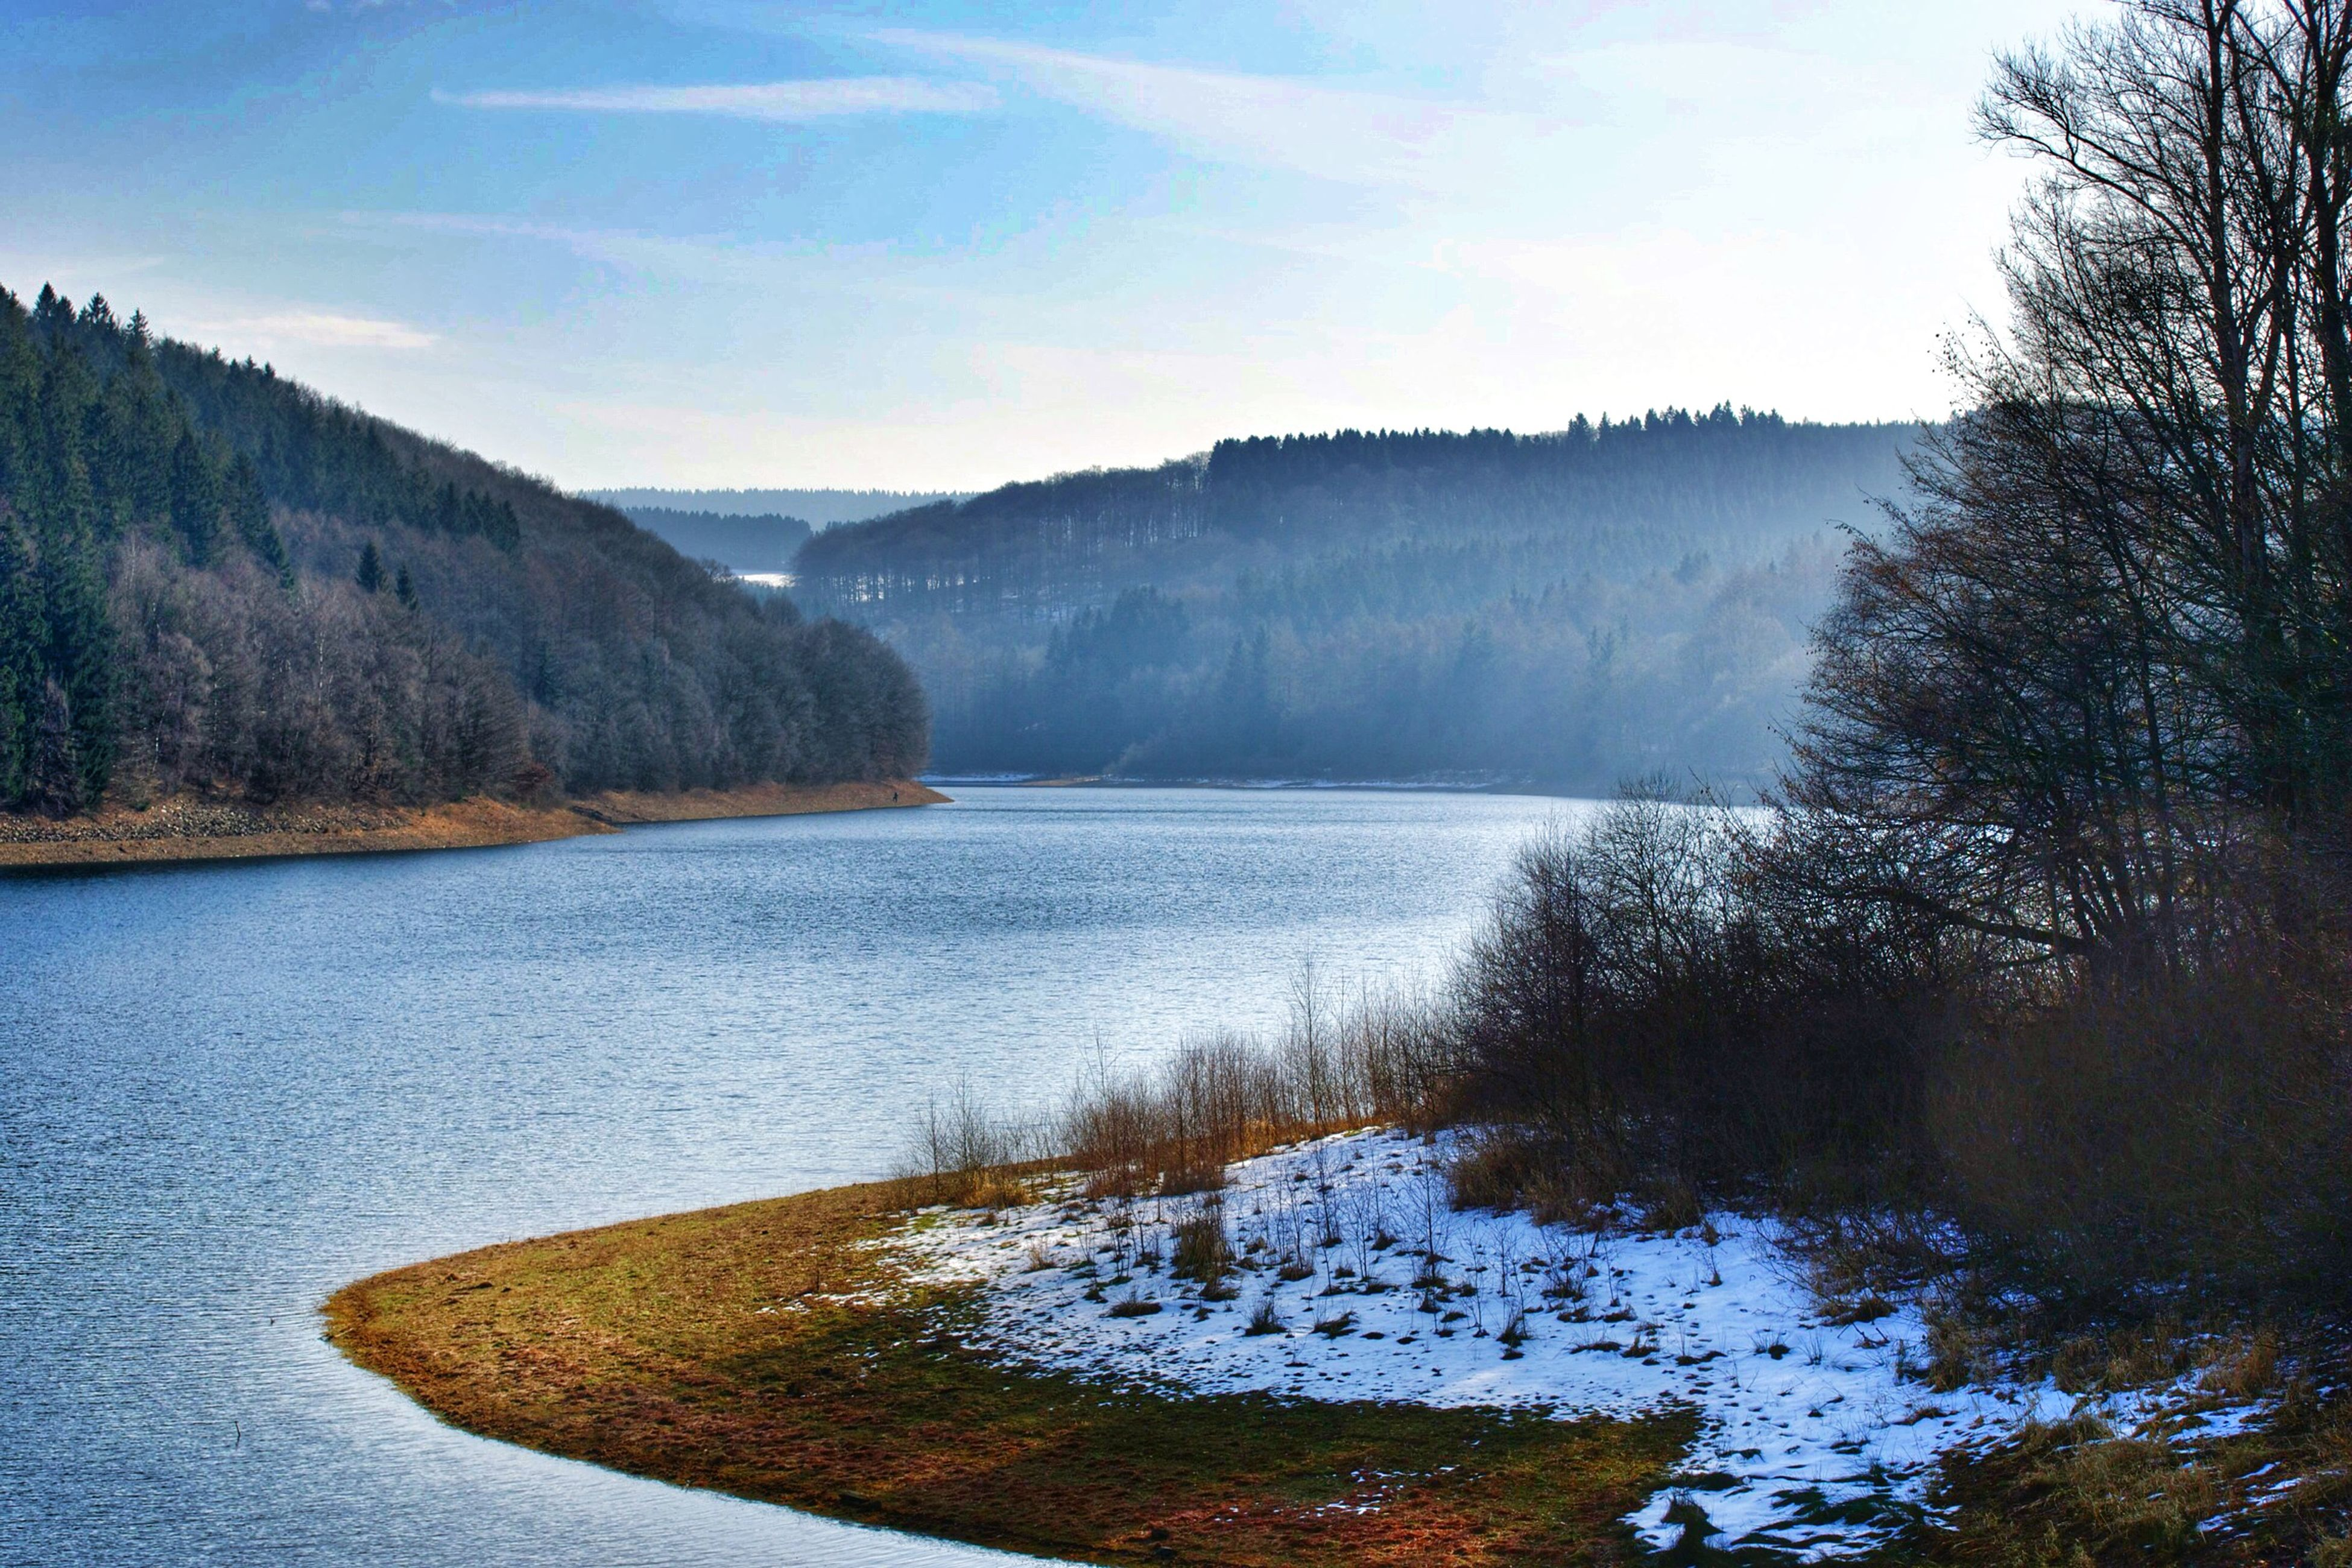 Homelands... Water and forrest Taking Photos Nature Photography Enjoying Life Landscape Nature_ Collection  Winter EyeEm Nature Lover Eye Em Best Shots Water